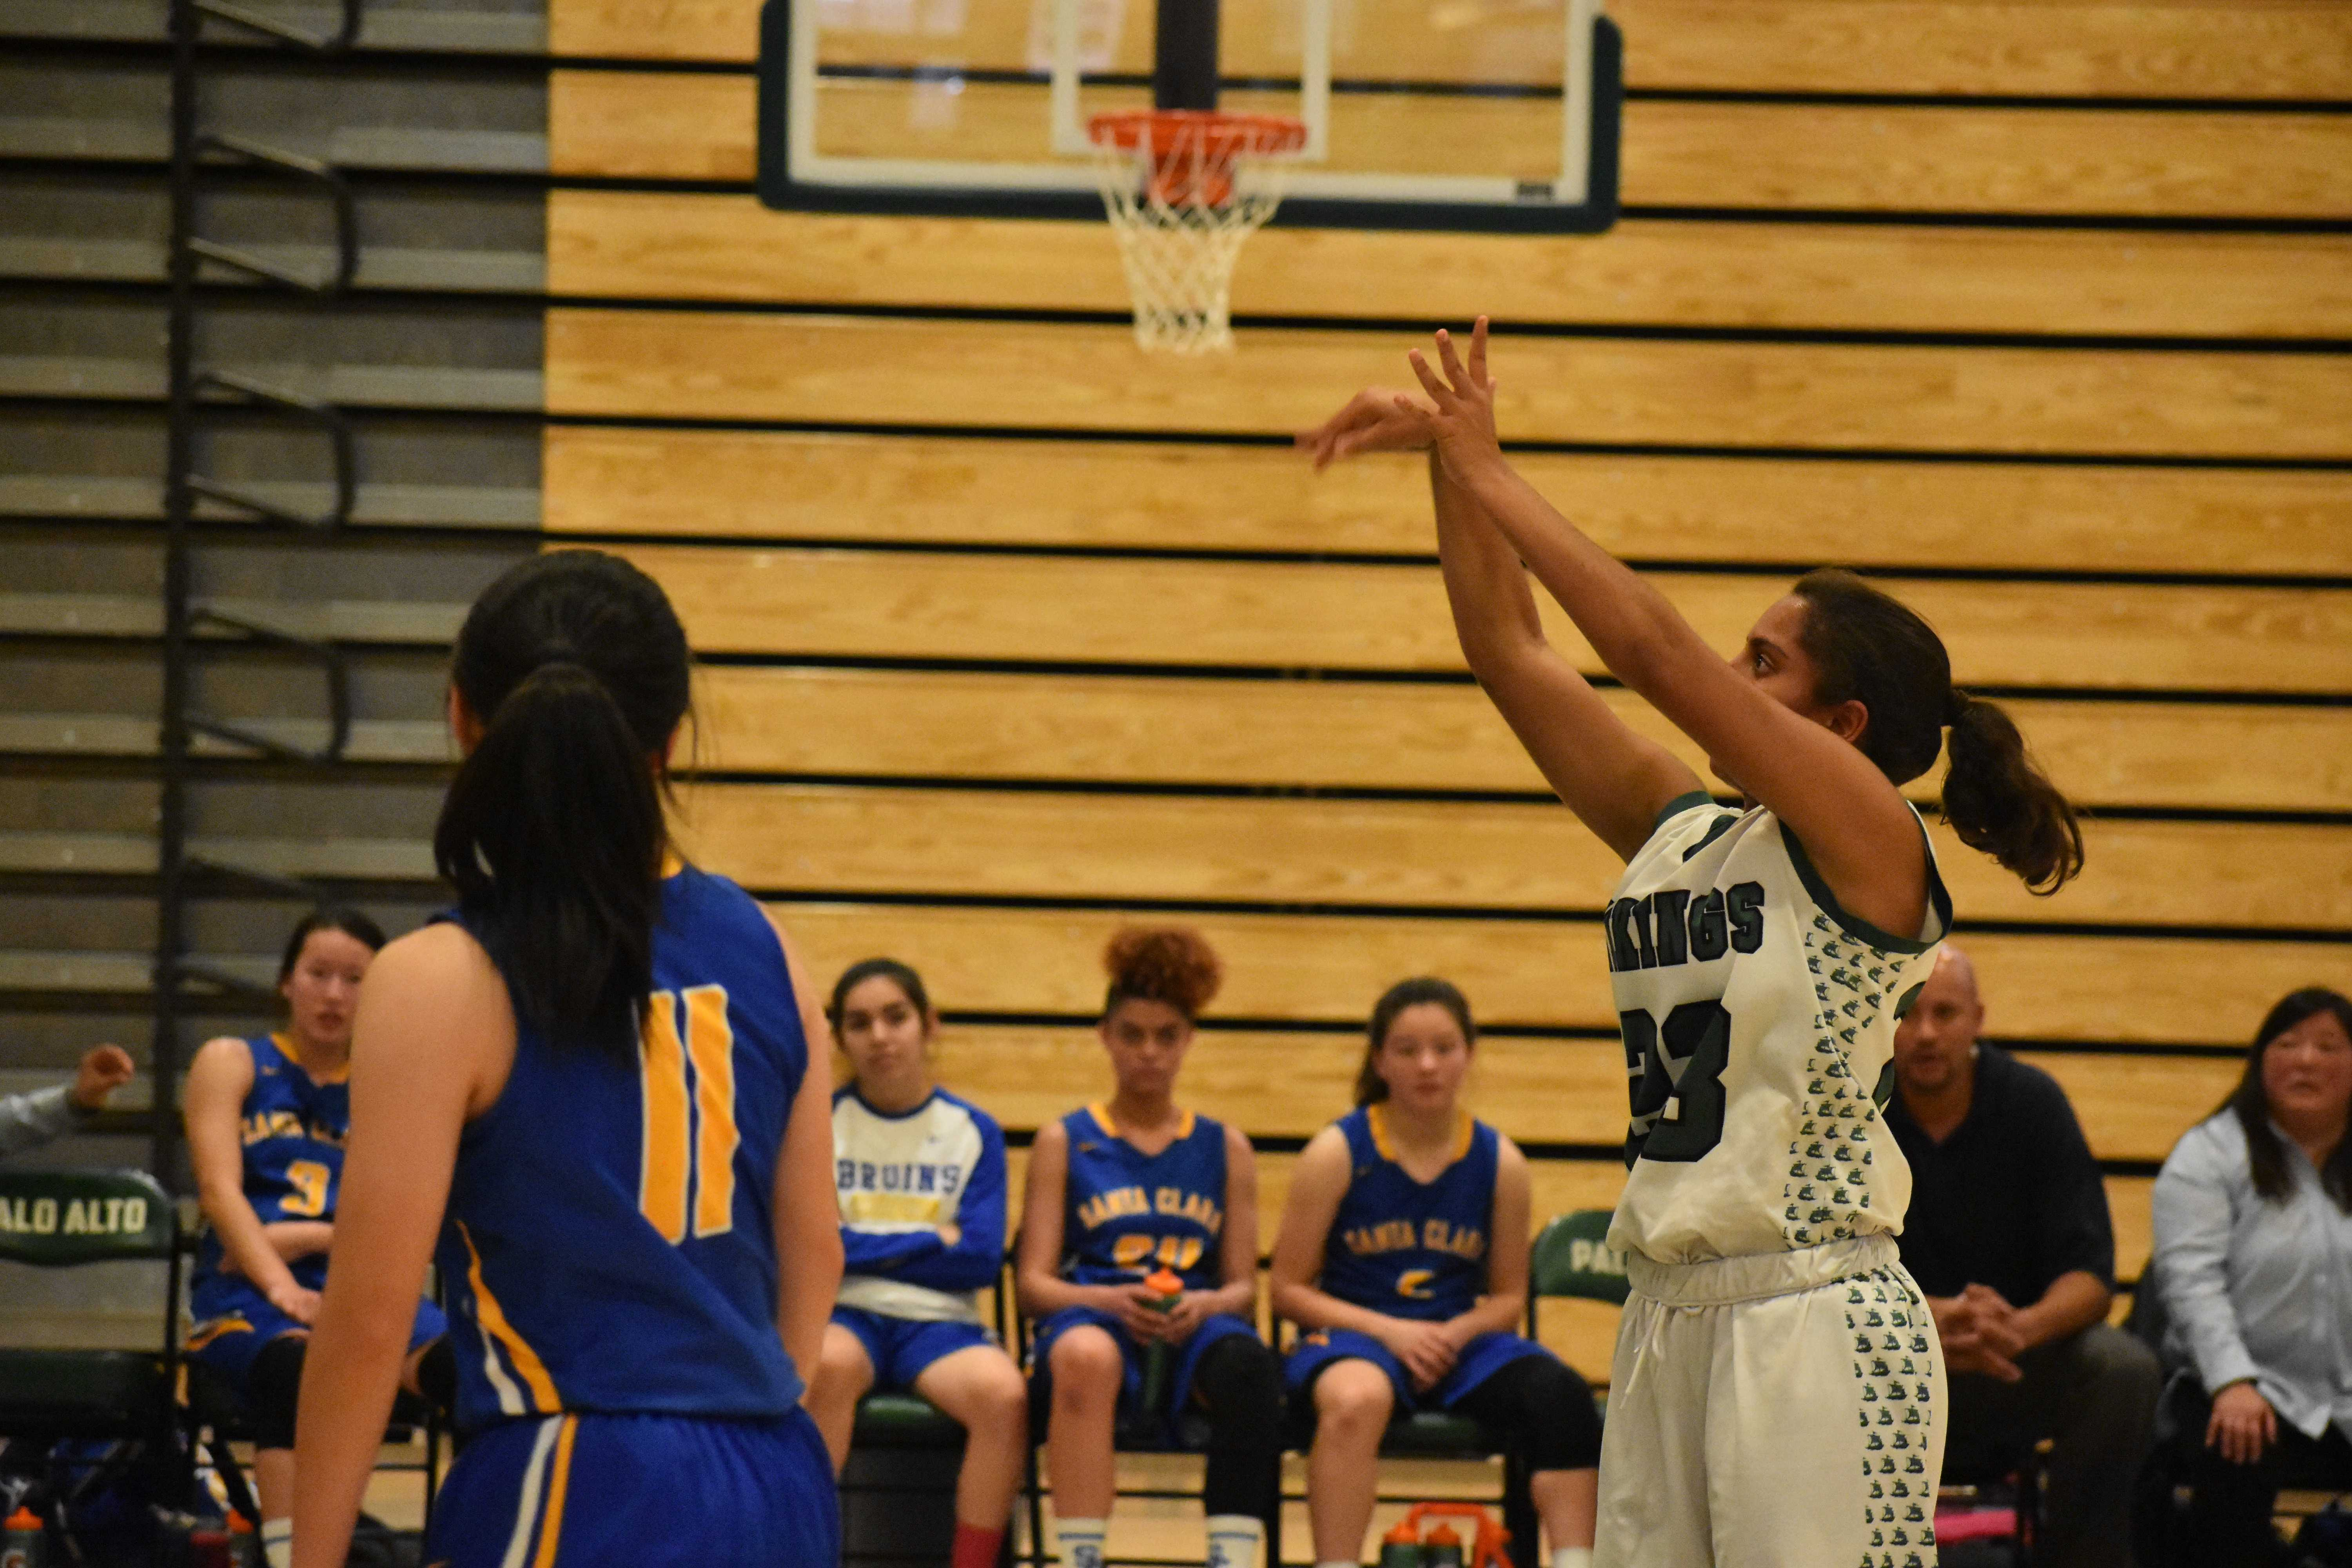 Freshman guard Annika Shah watches as her shot sinks into the net in a game against Santa Clara High School. Palo Alto High School went on to win the game, 51-40.